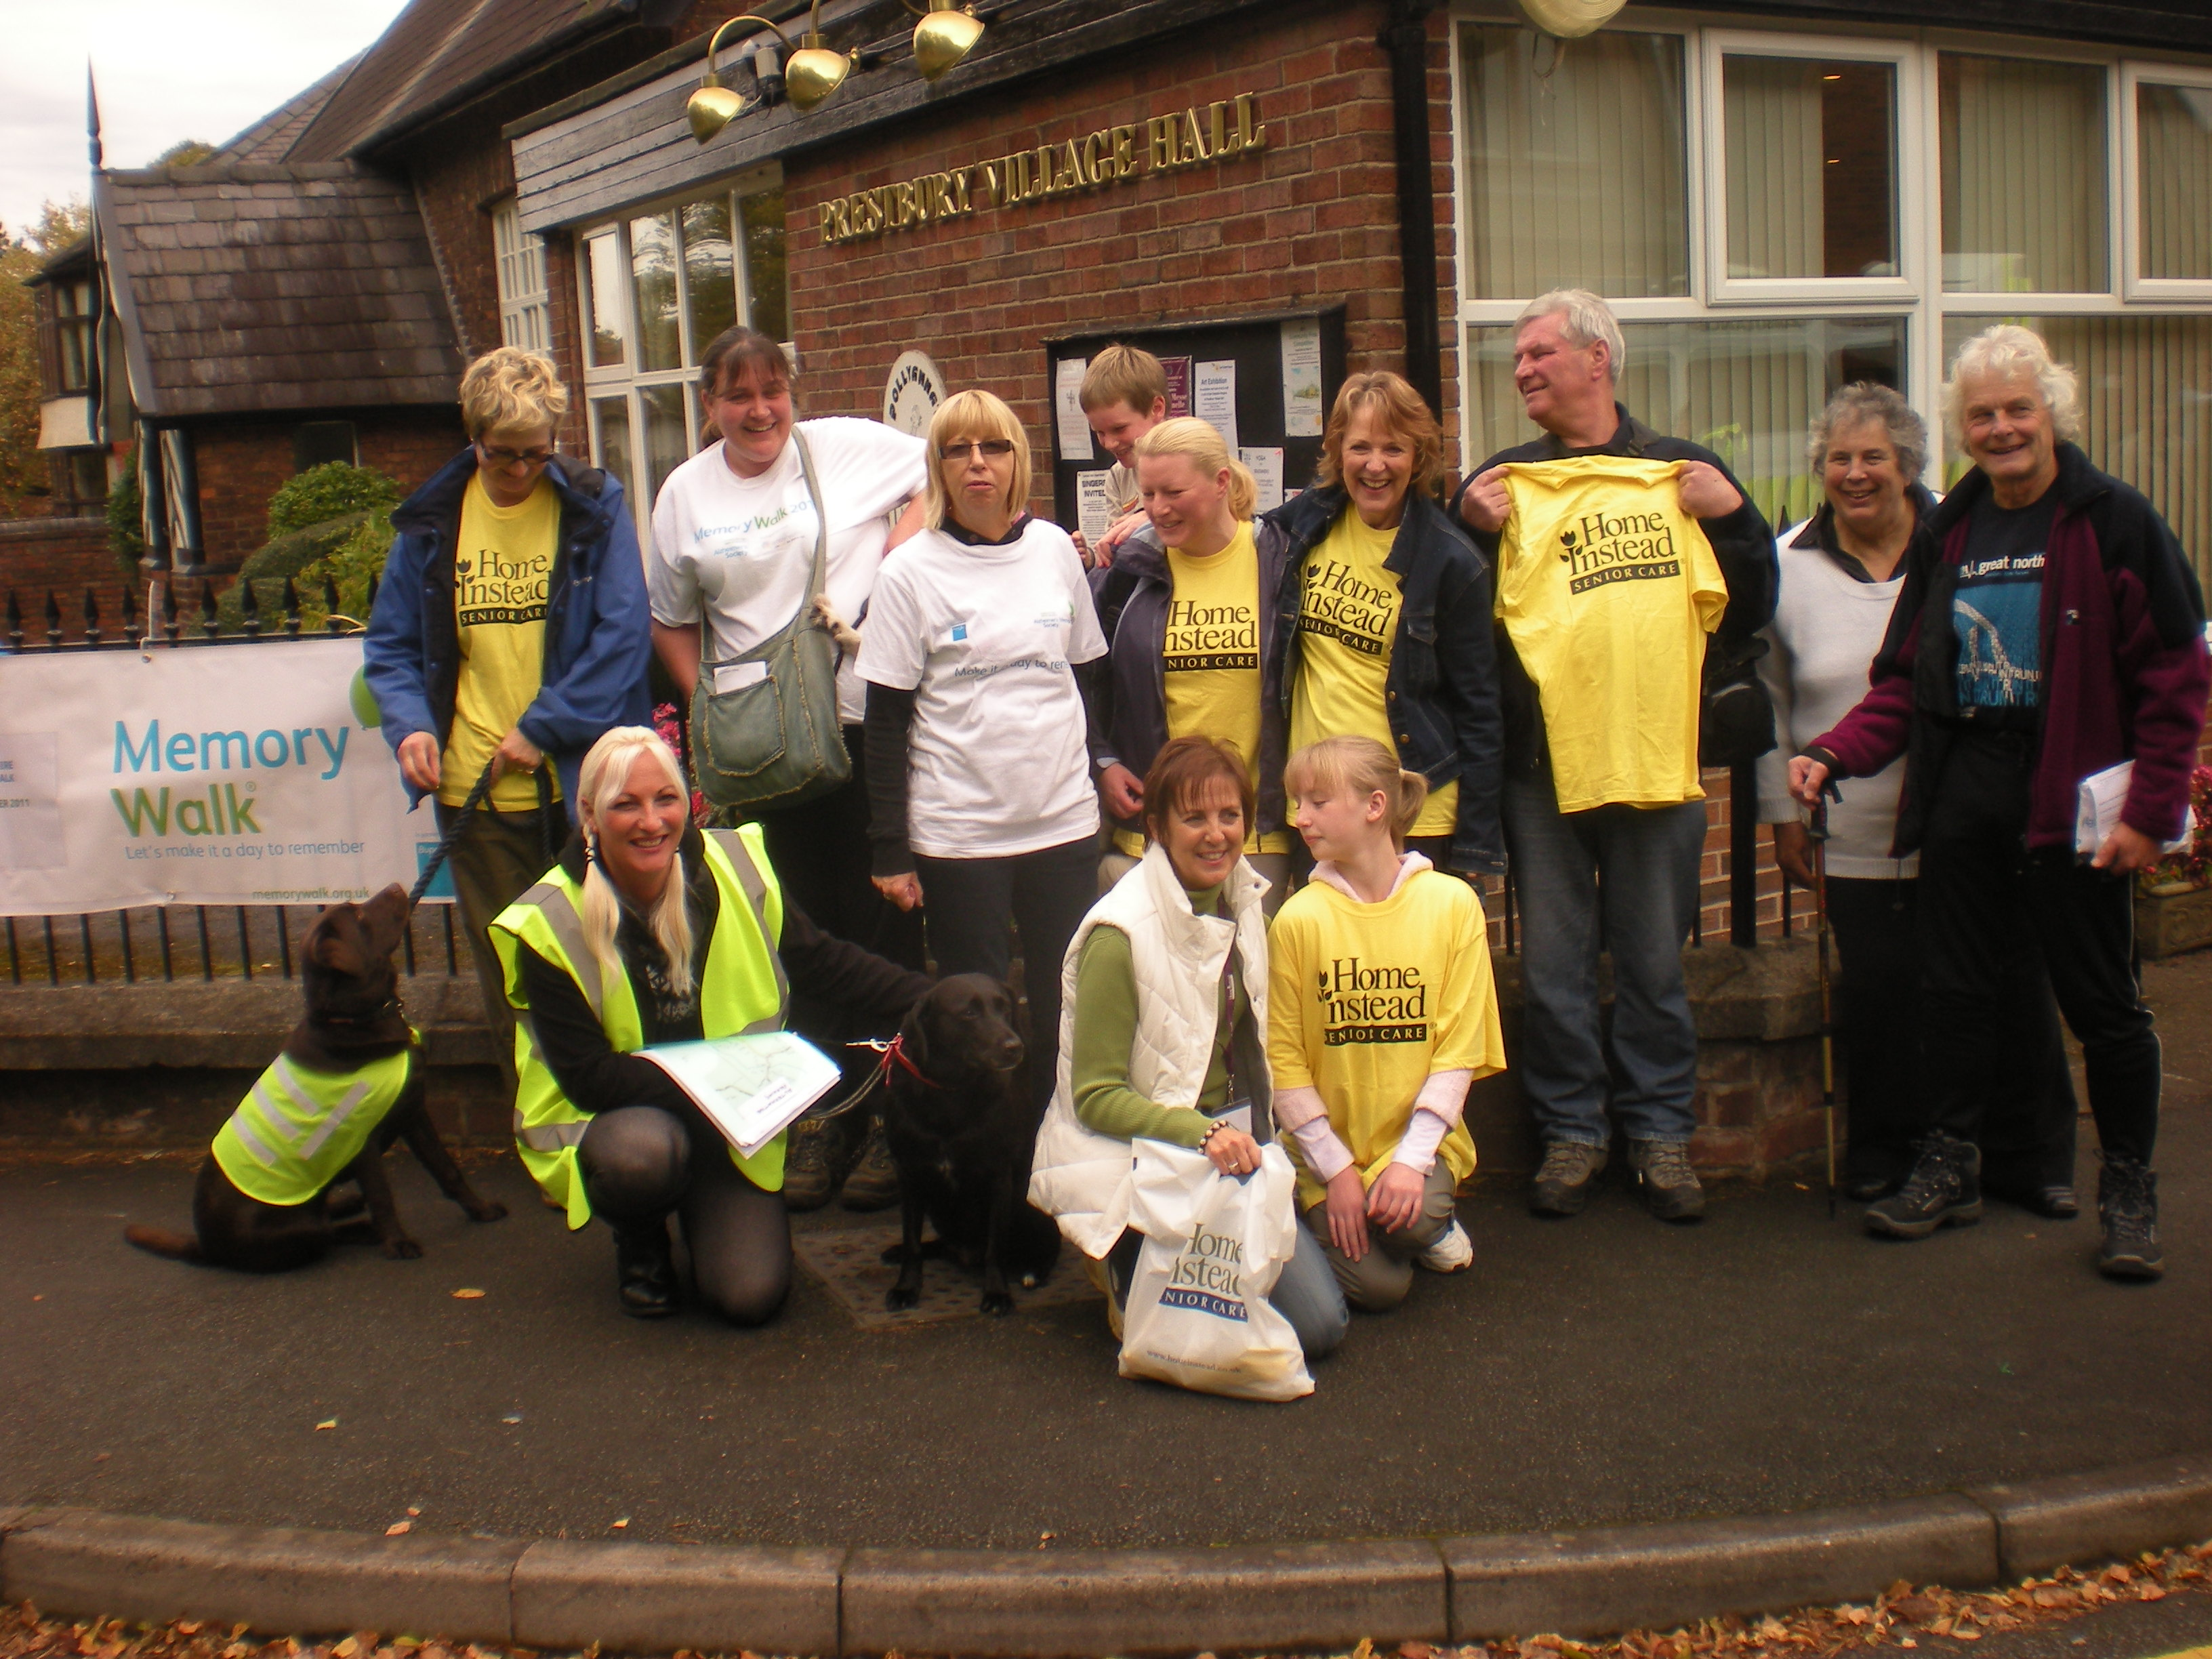 Home Instead Senior Care East Cheshire office team during the Alzheimer's Society annual Memory Walk